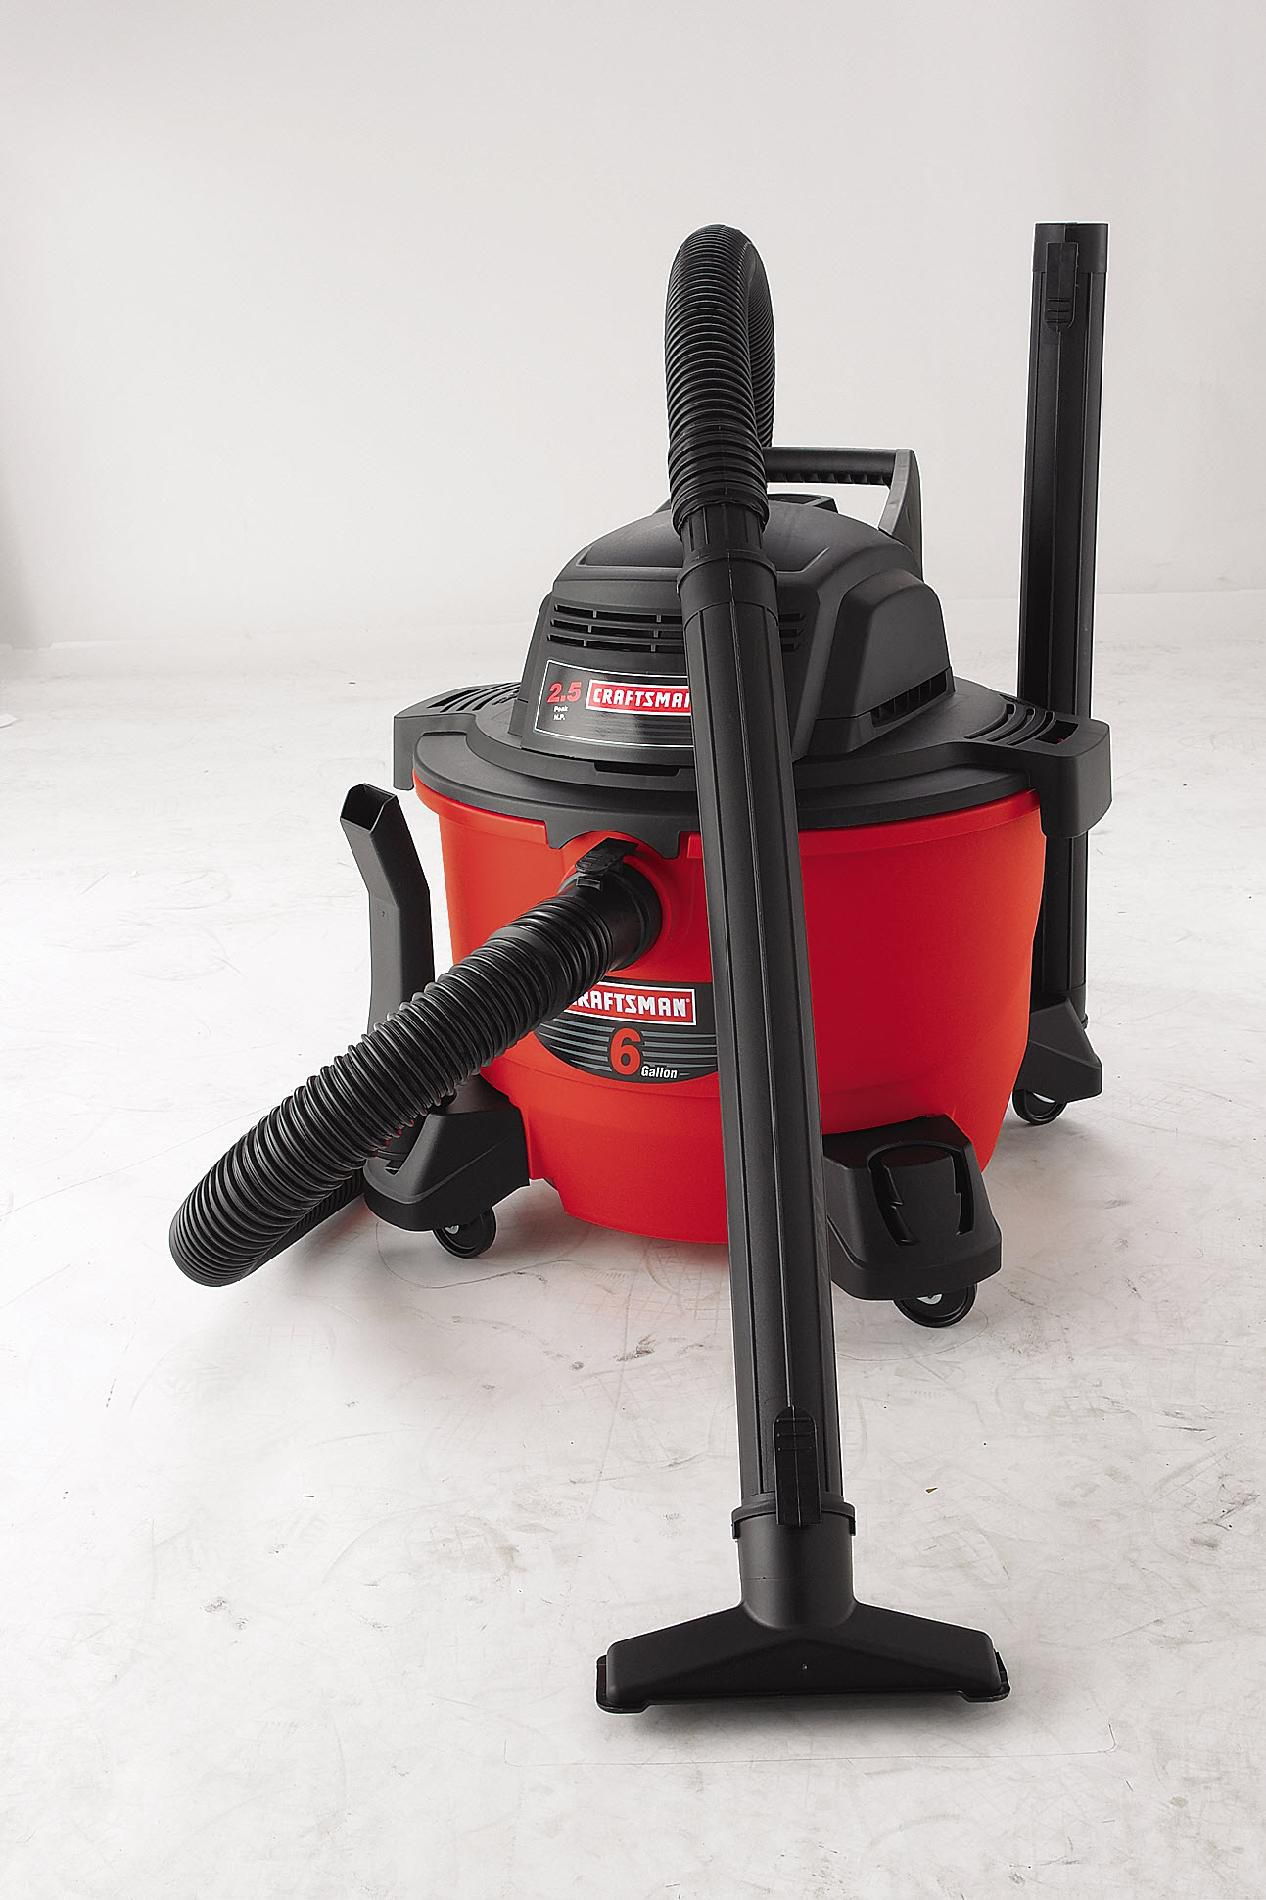 Craftsman 6 gal. 2.5 Peak HP Wet/Dry Vac